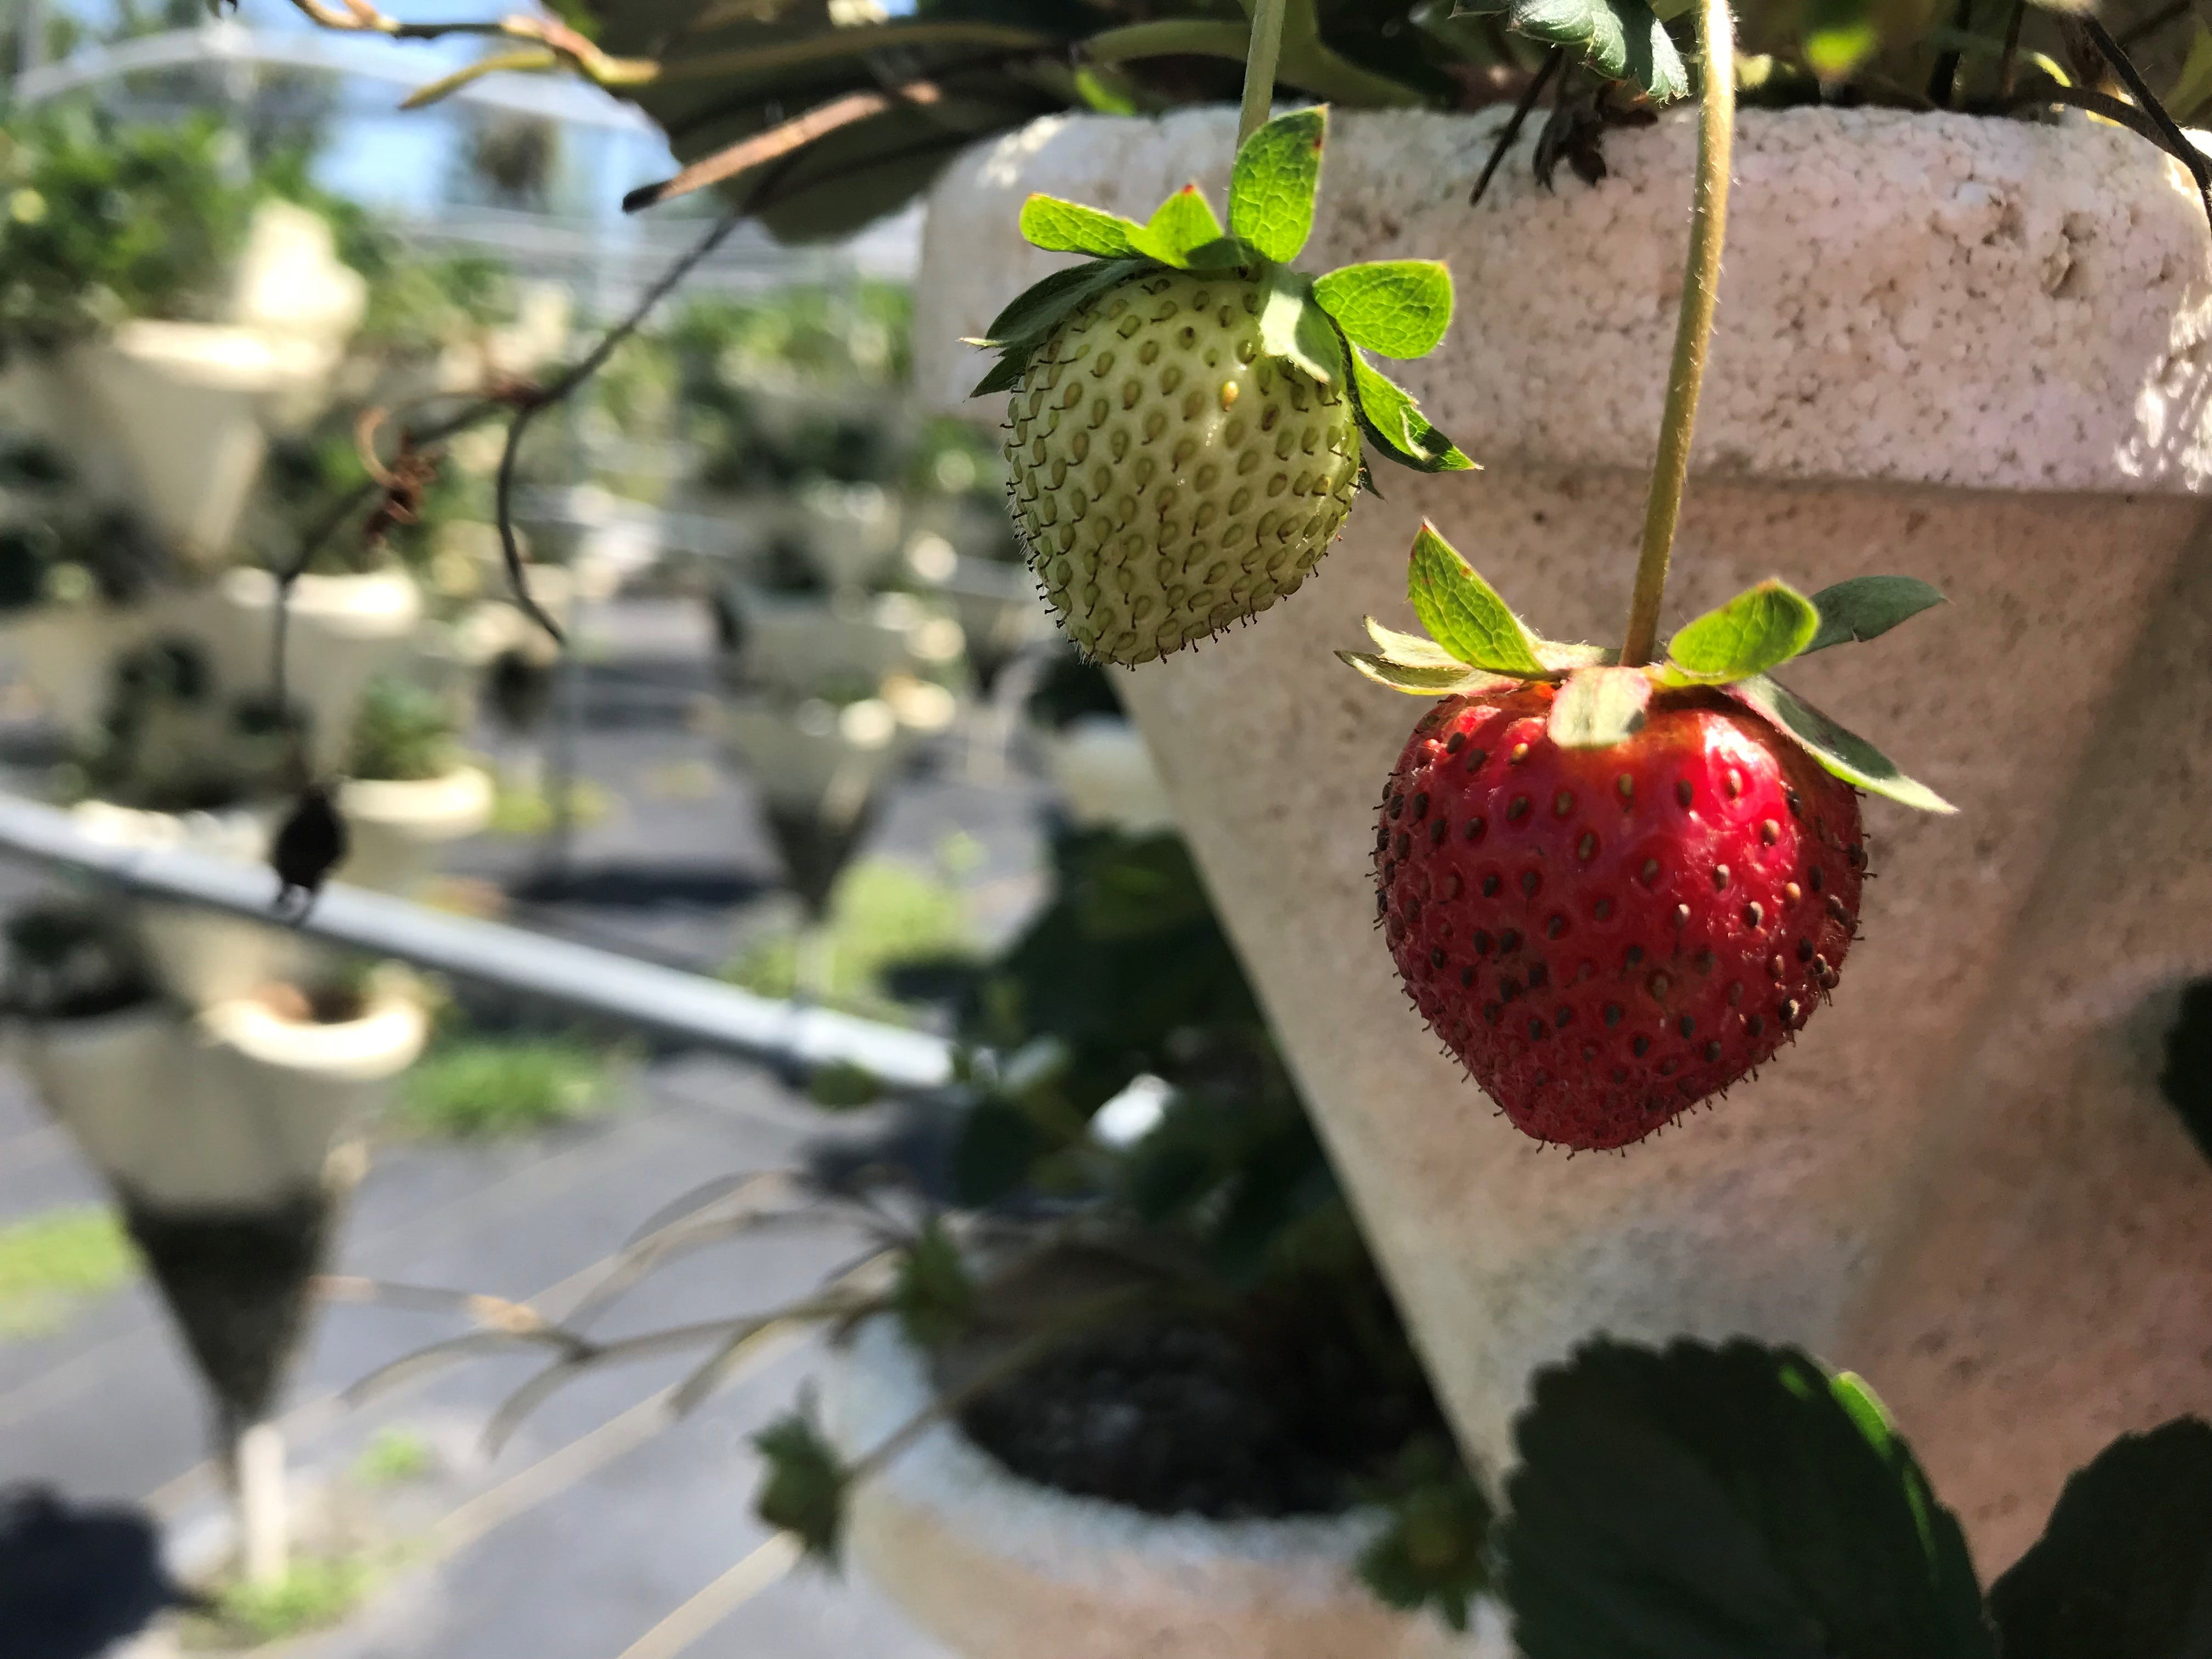 636607000812673292-MJStrawberry Melbourne hydroponic farm lets you pick, cook and eat your vegetables on the spot